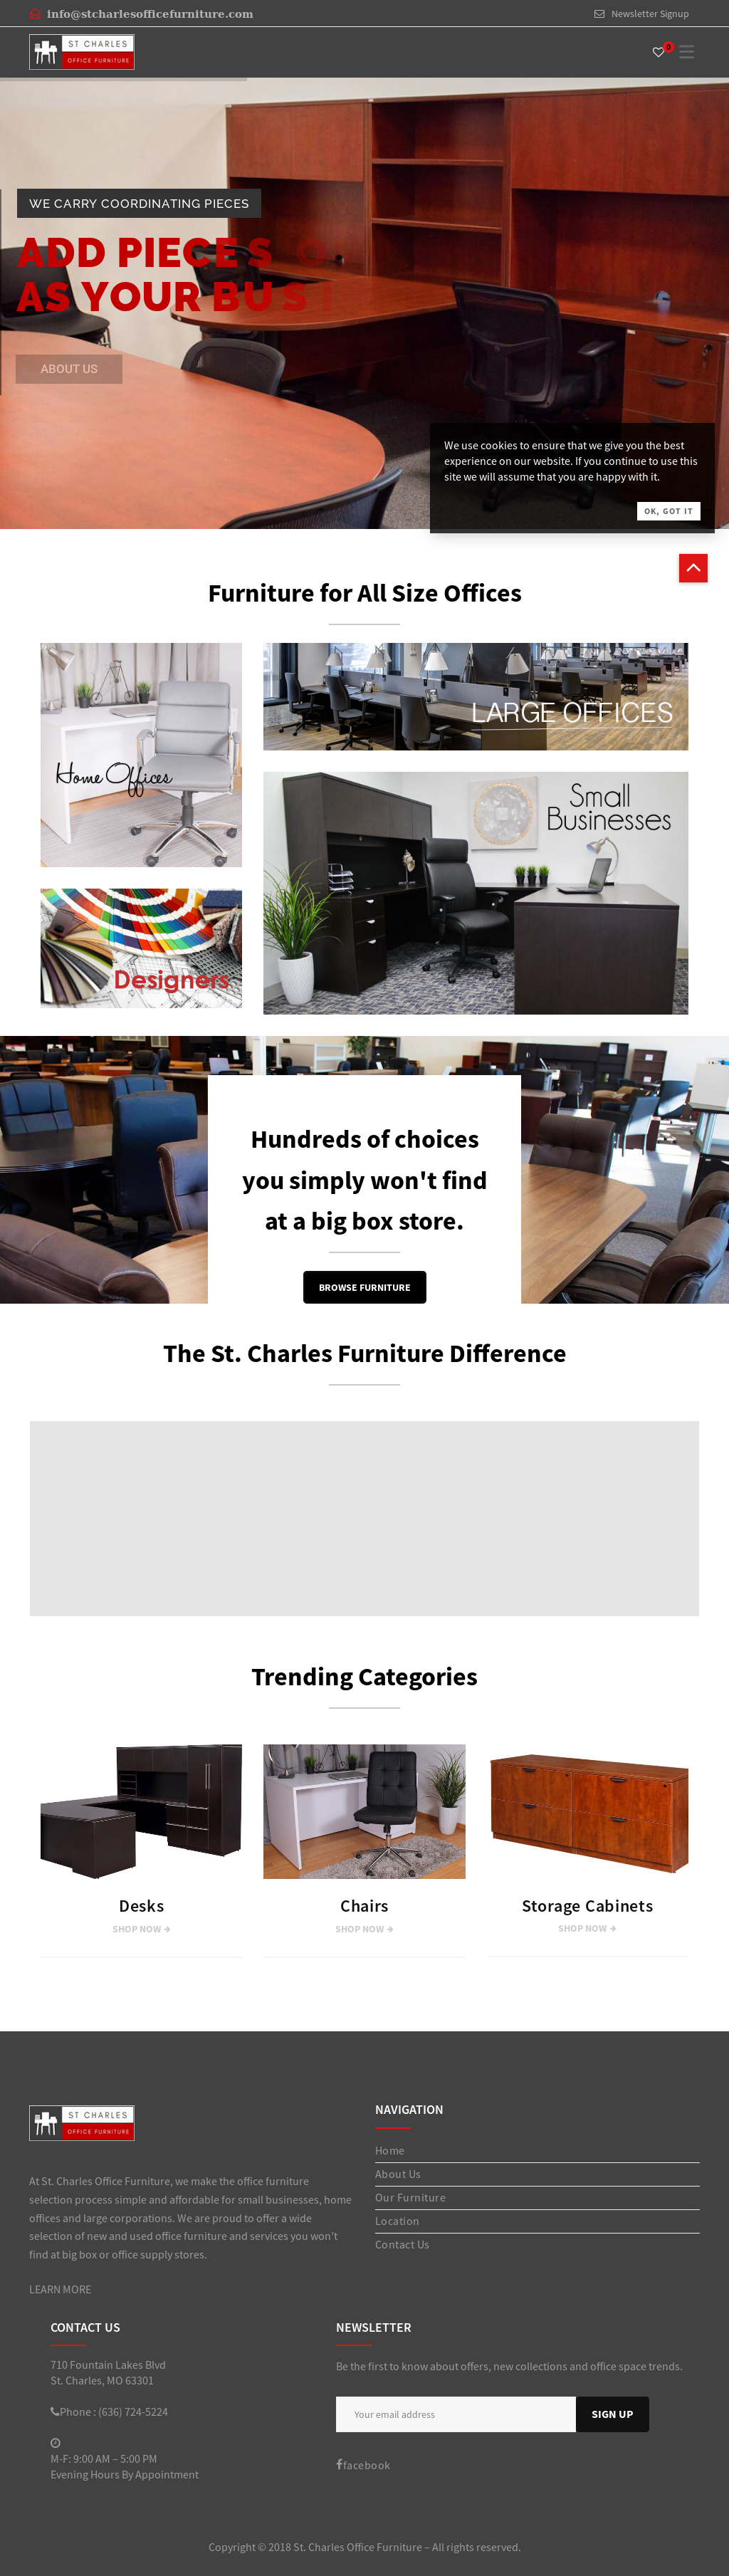 St. Charles Office Furniture Website History